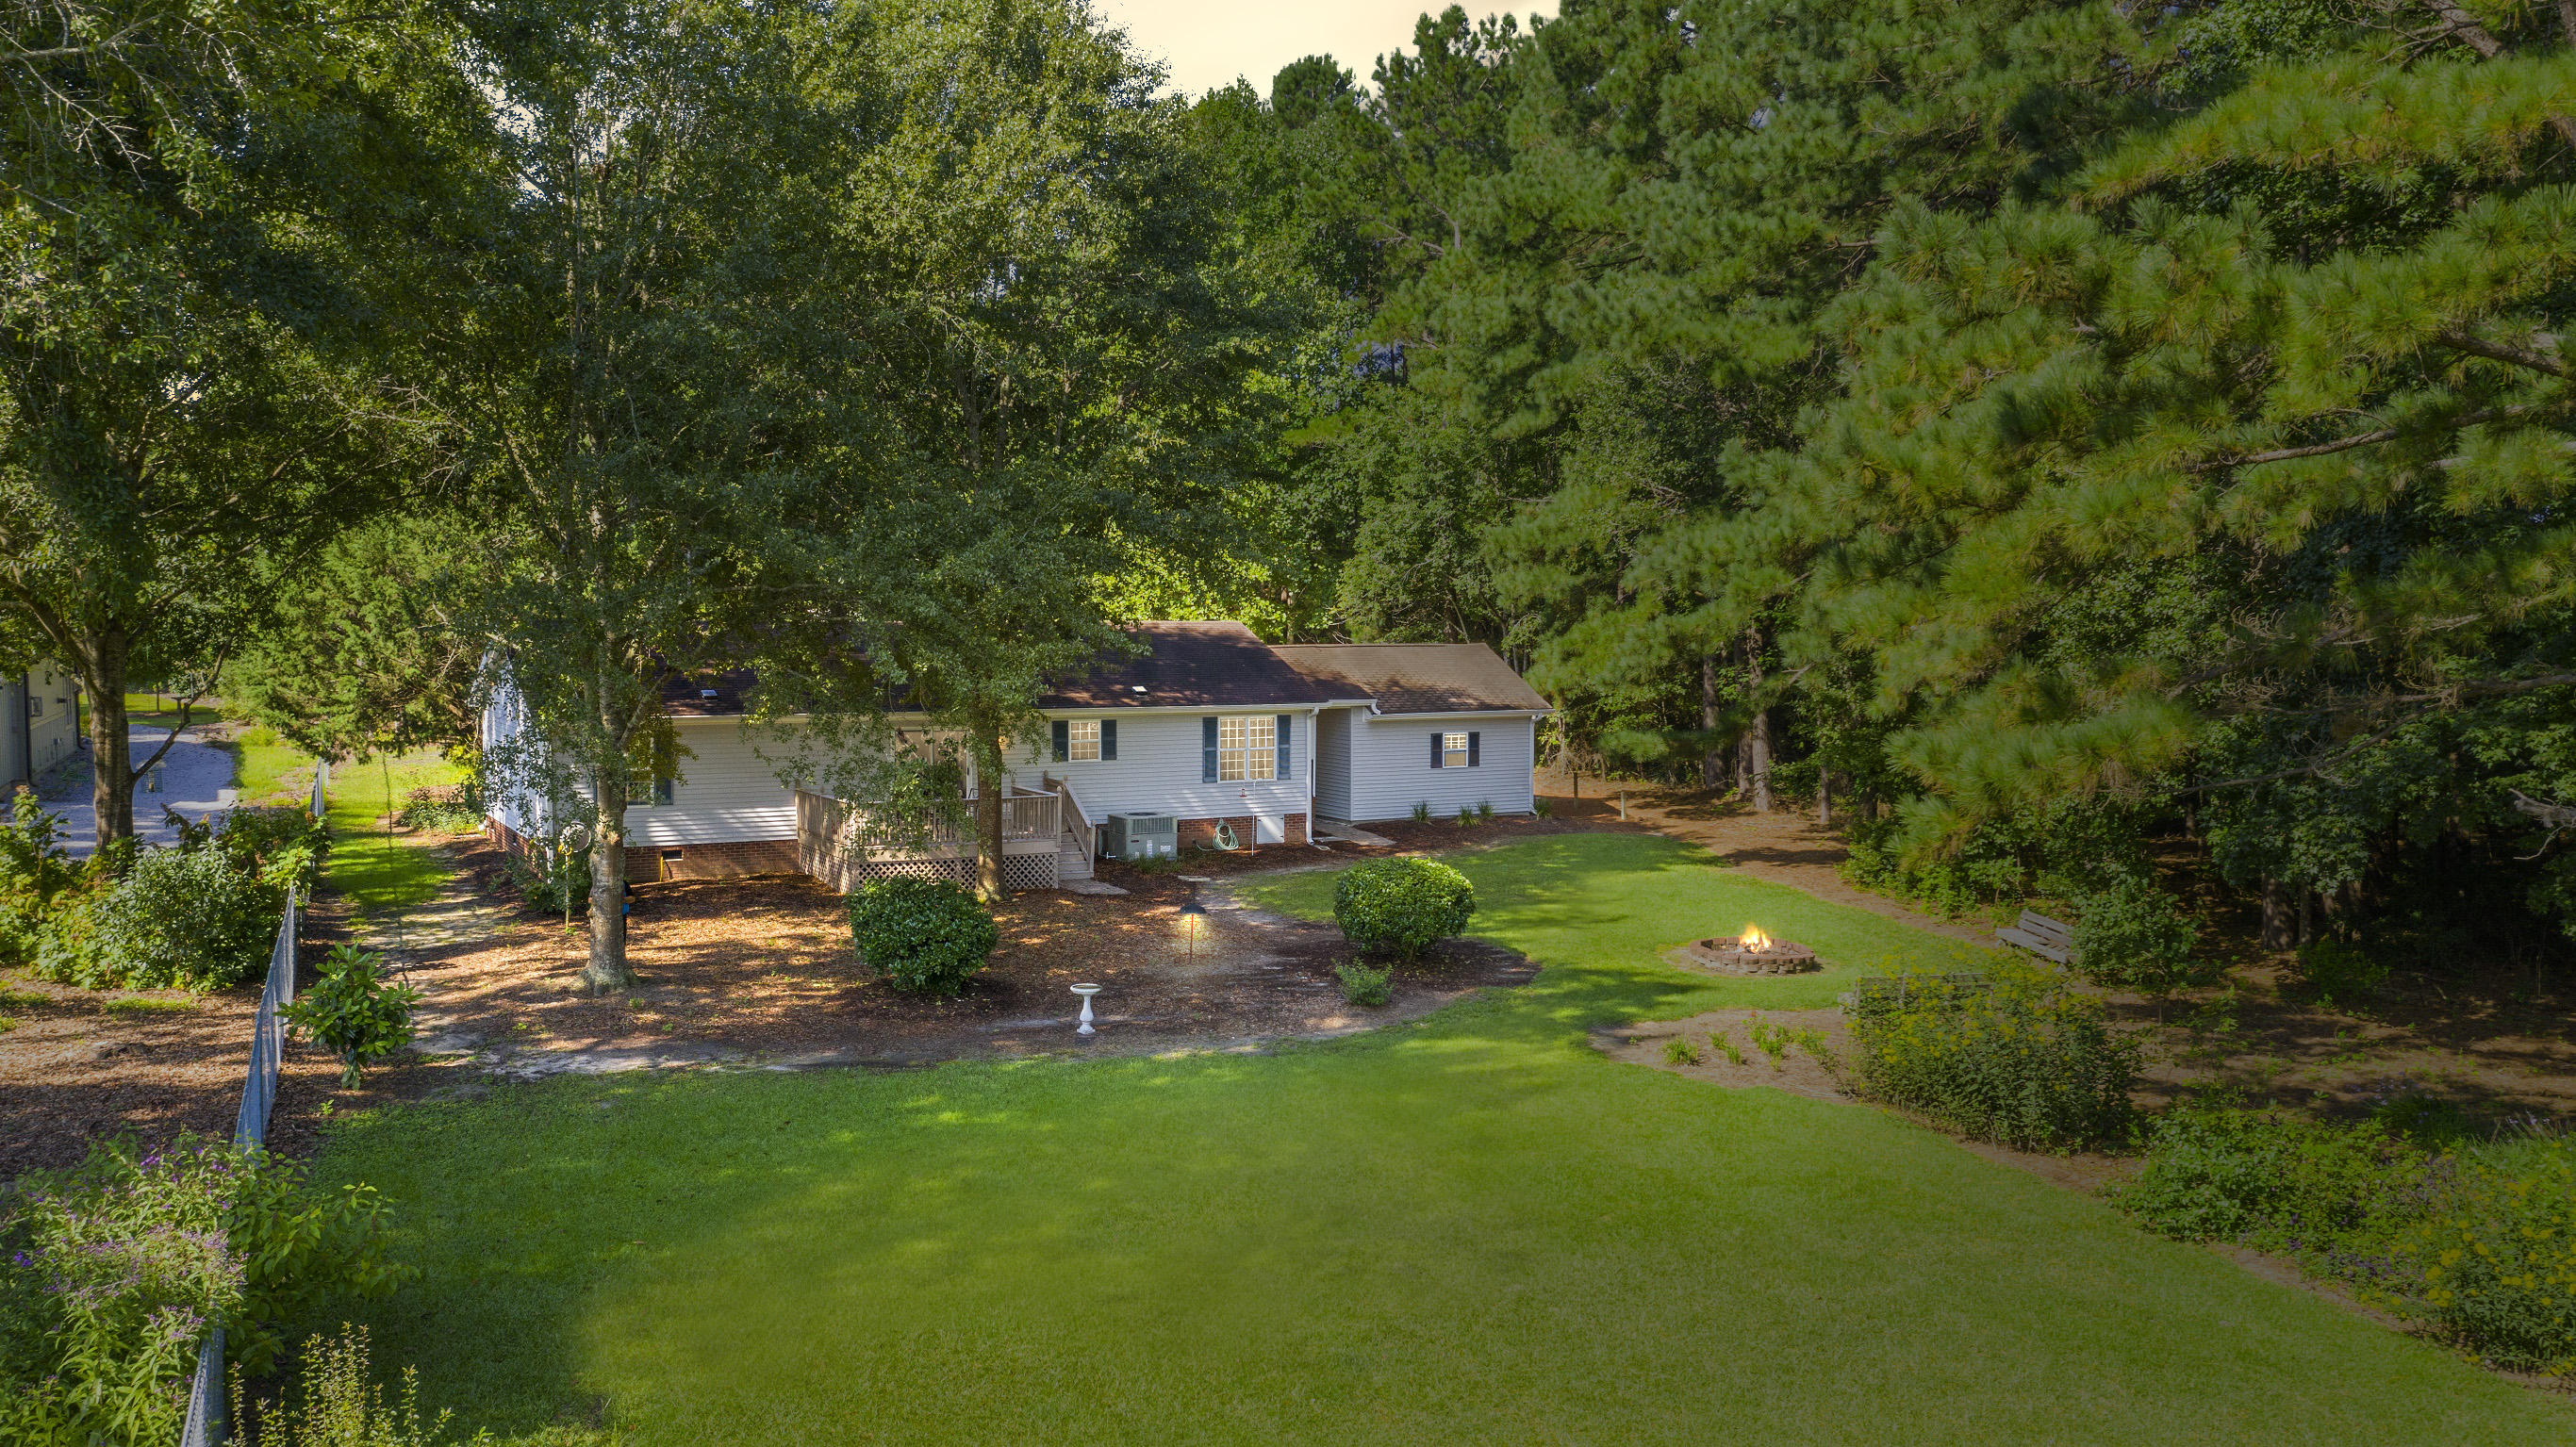 Plantation II Homes For Sale - 155 Meredith, Eutawville, SC - 7